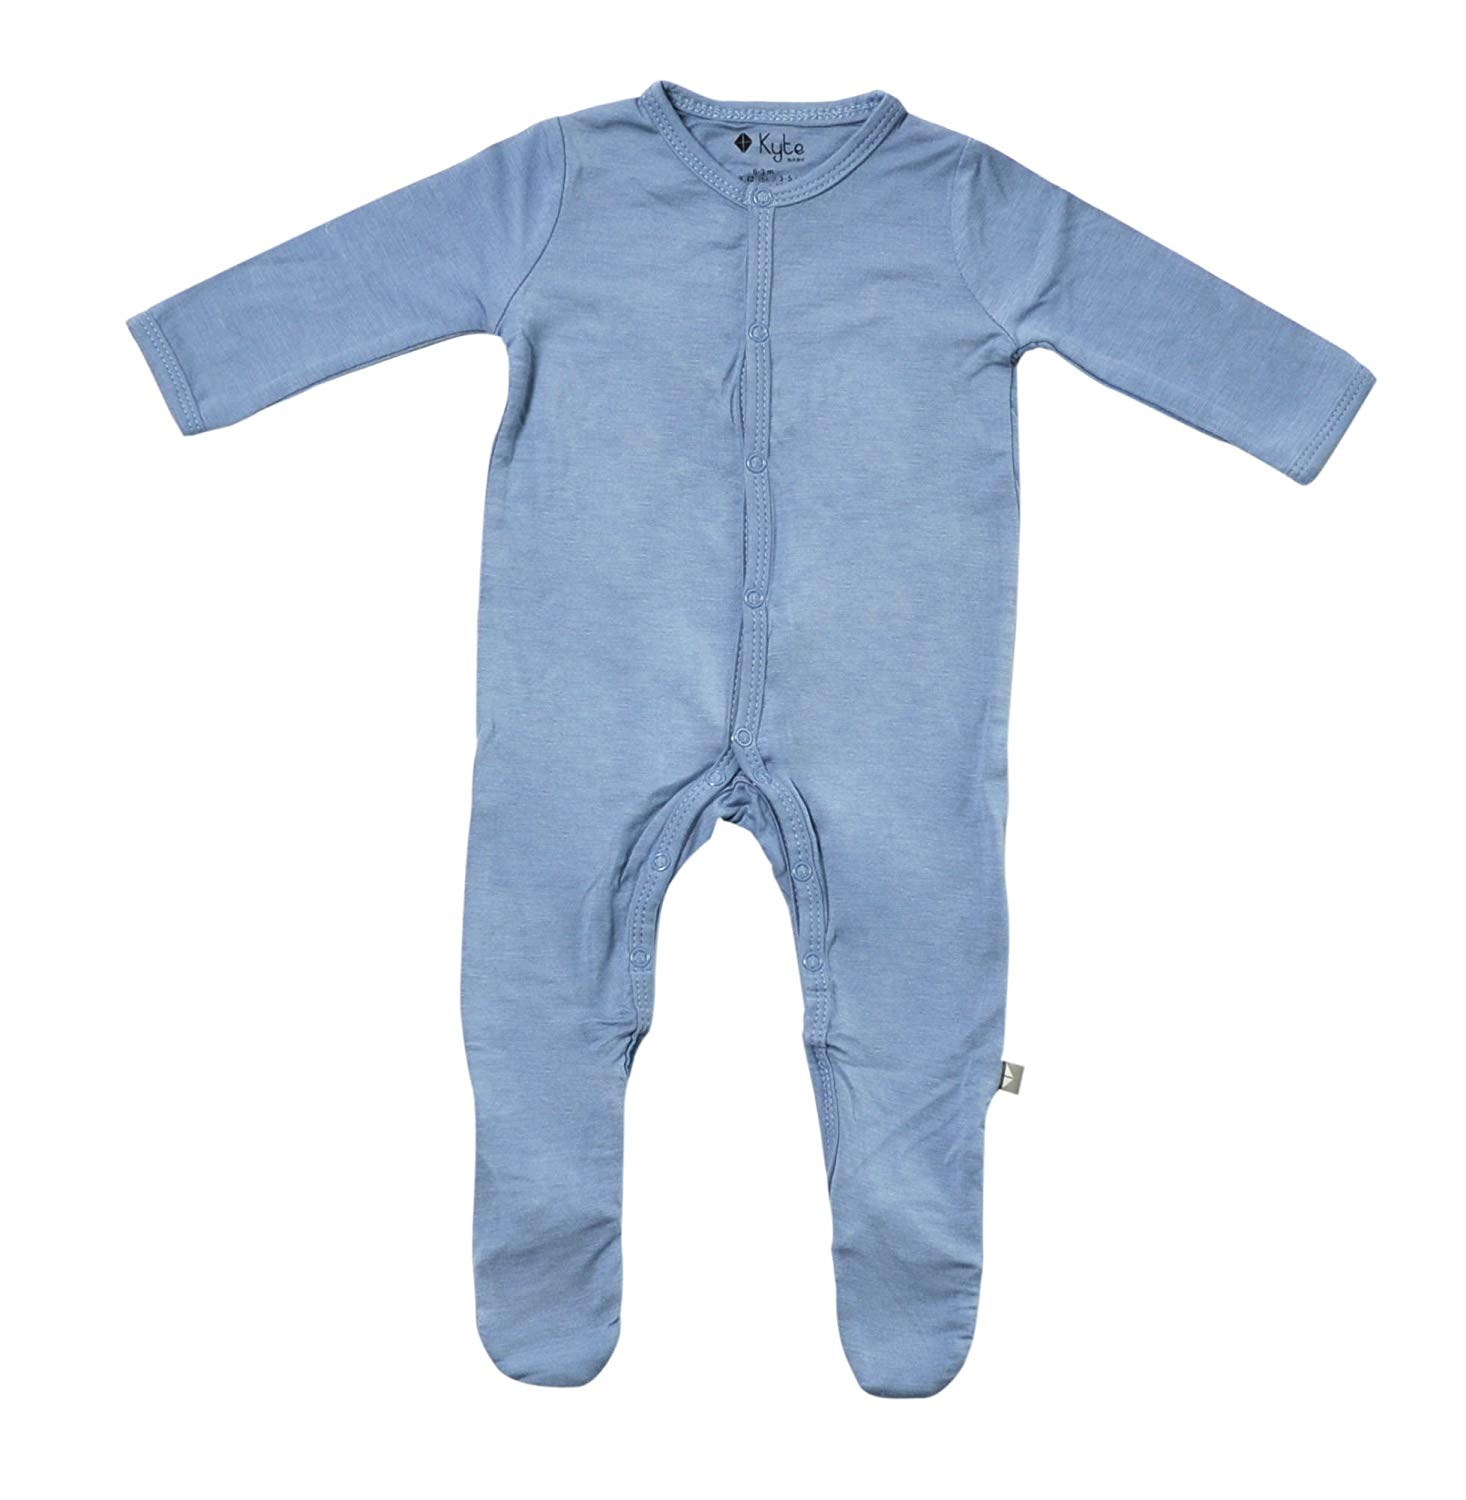 5 Pieces   Baby Footed Pajamas Made Of Soft Organic Bamboo Rayon Material2019 Cargo Pants  Overalls  Straight